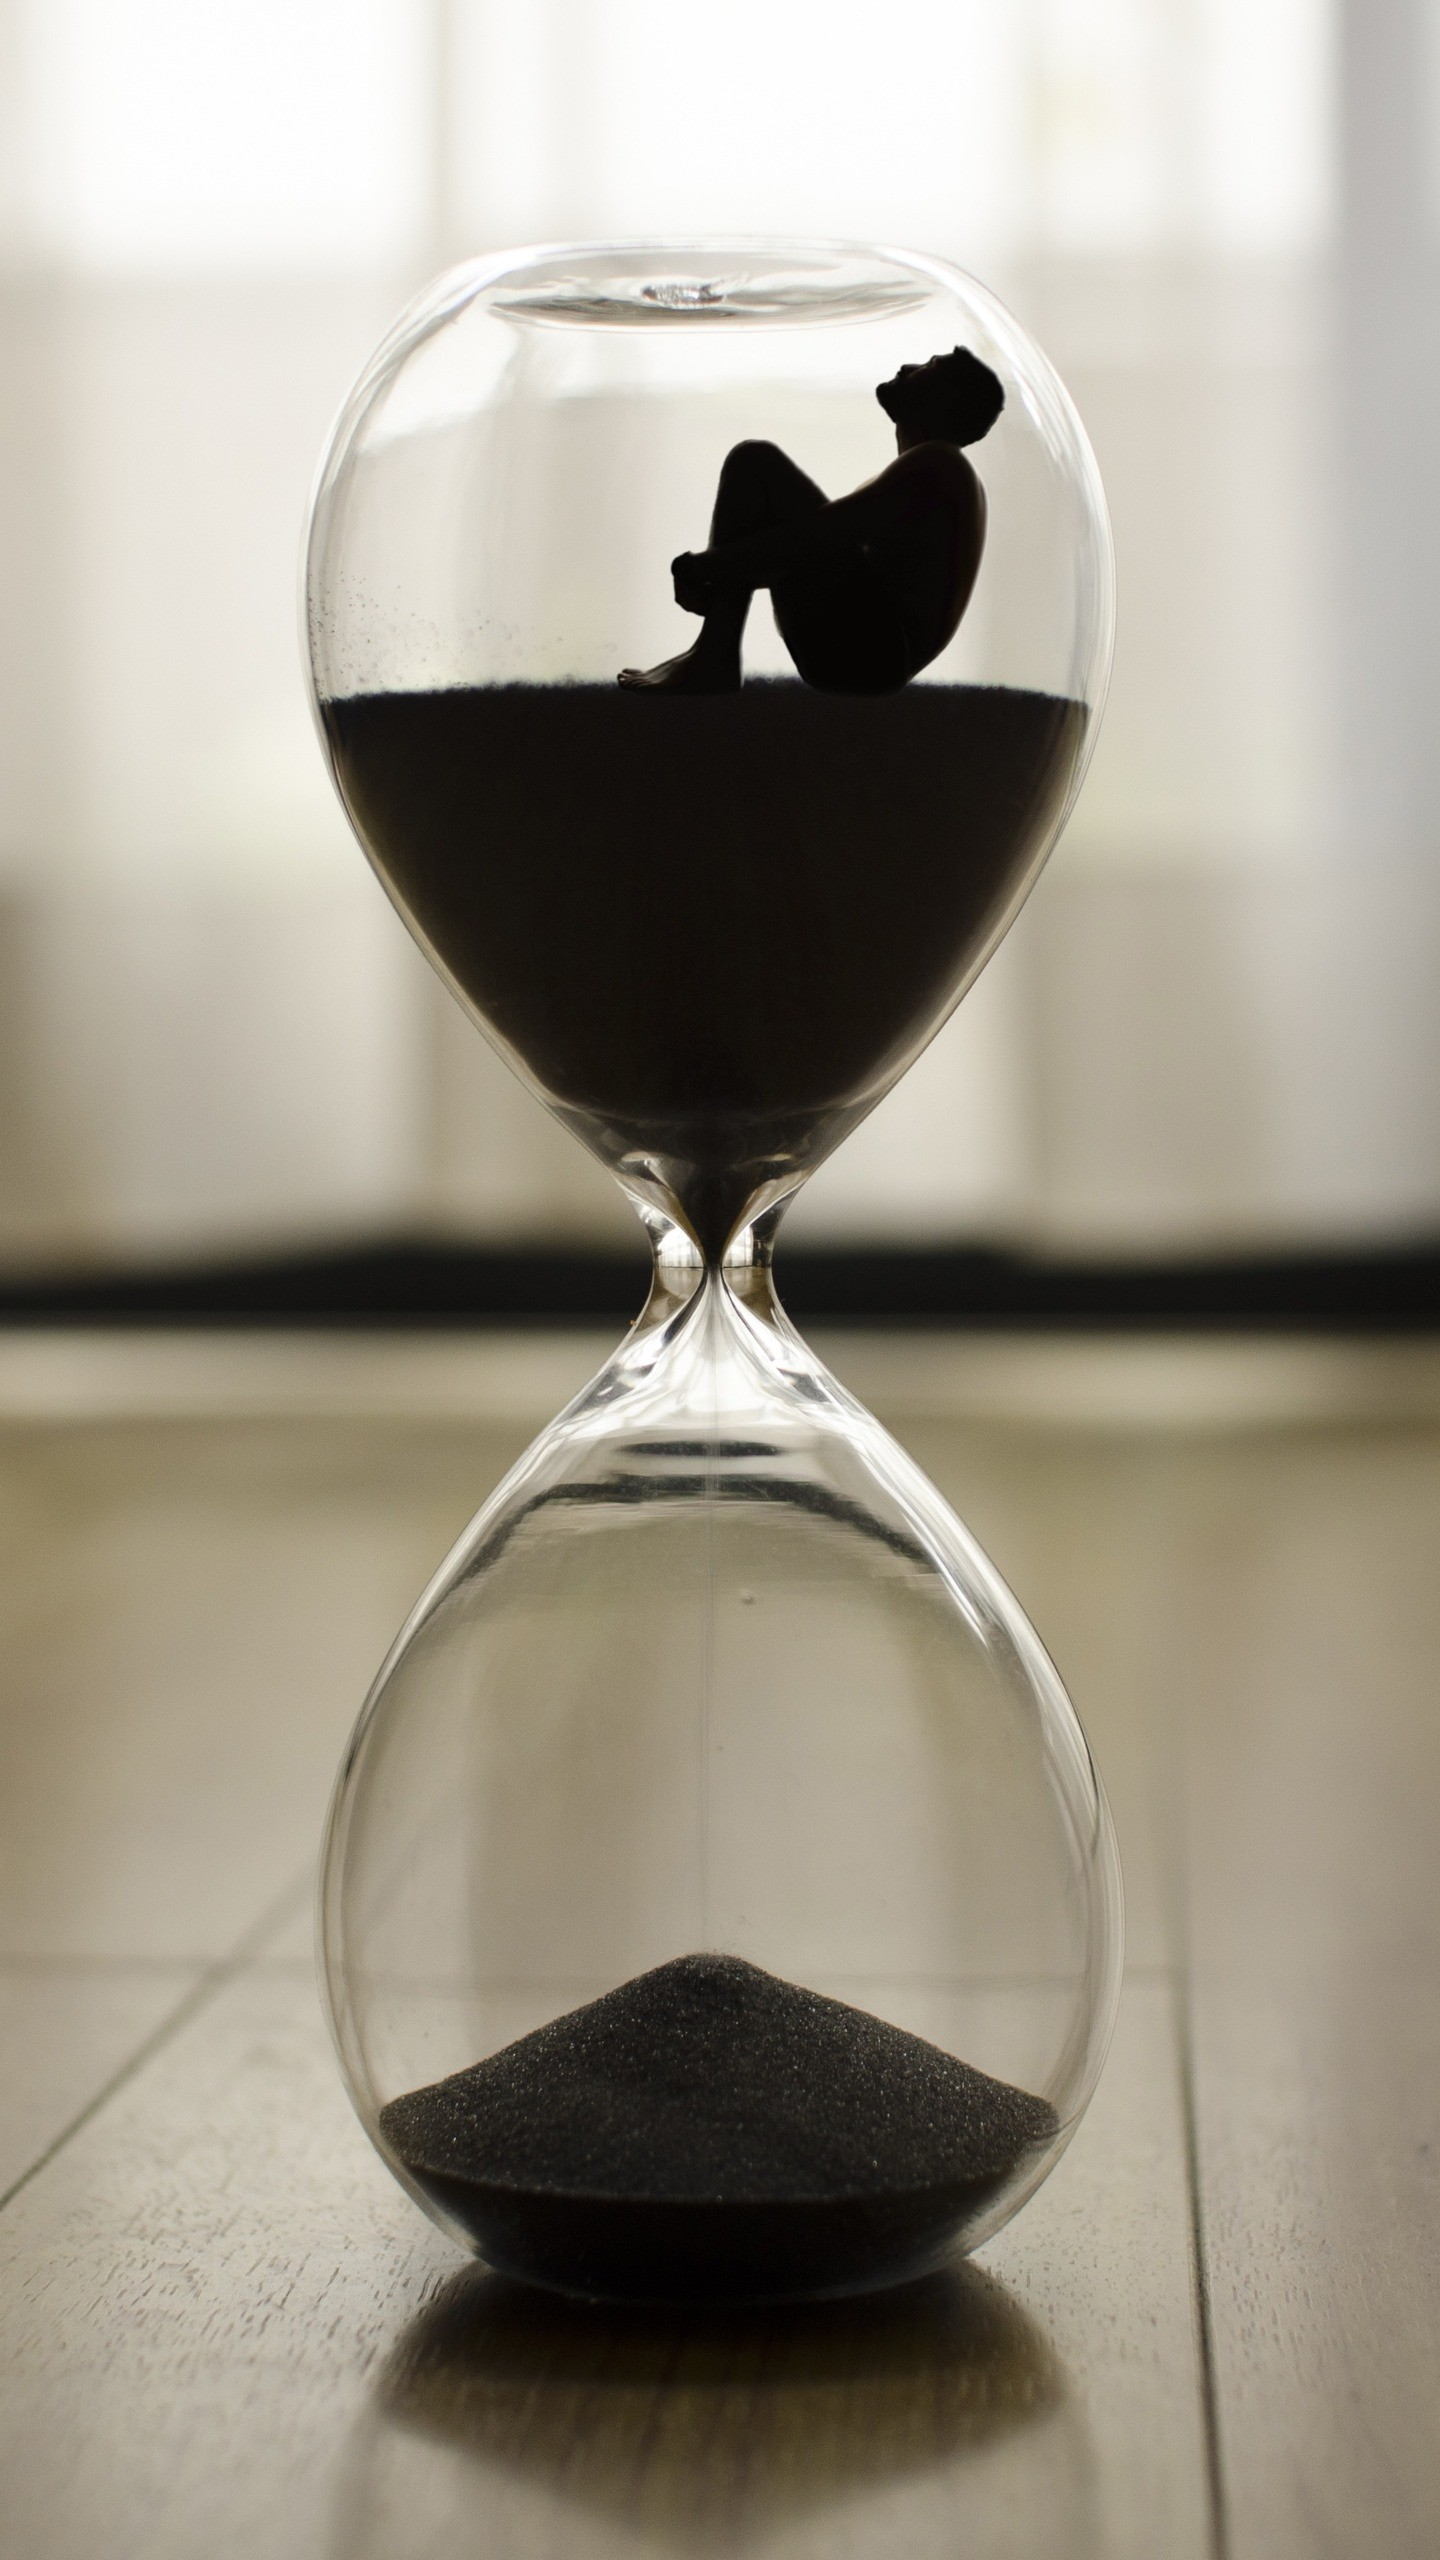 Res: 1440x2560,  Wallpaper hourglass, man, time, loneliness